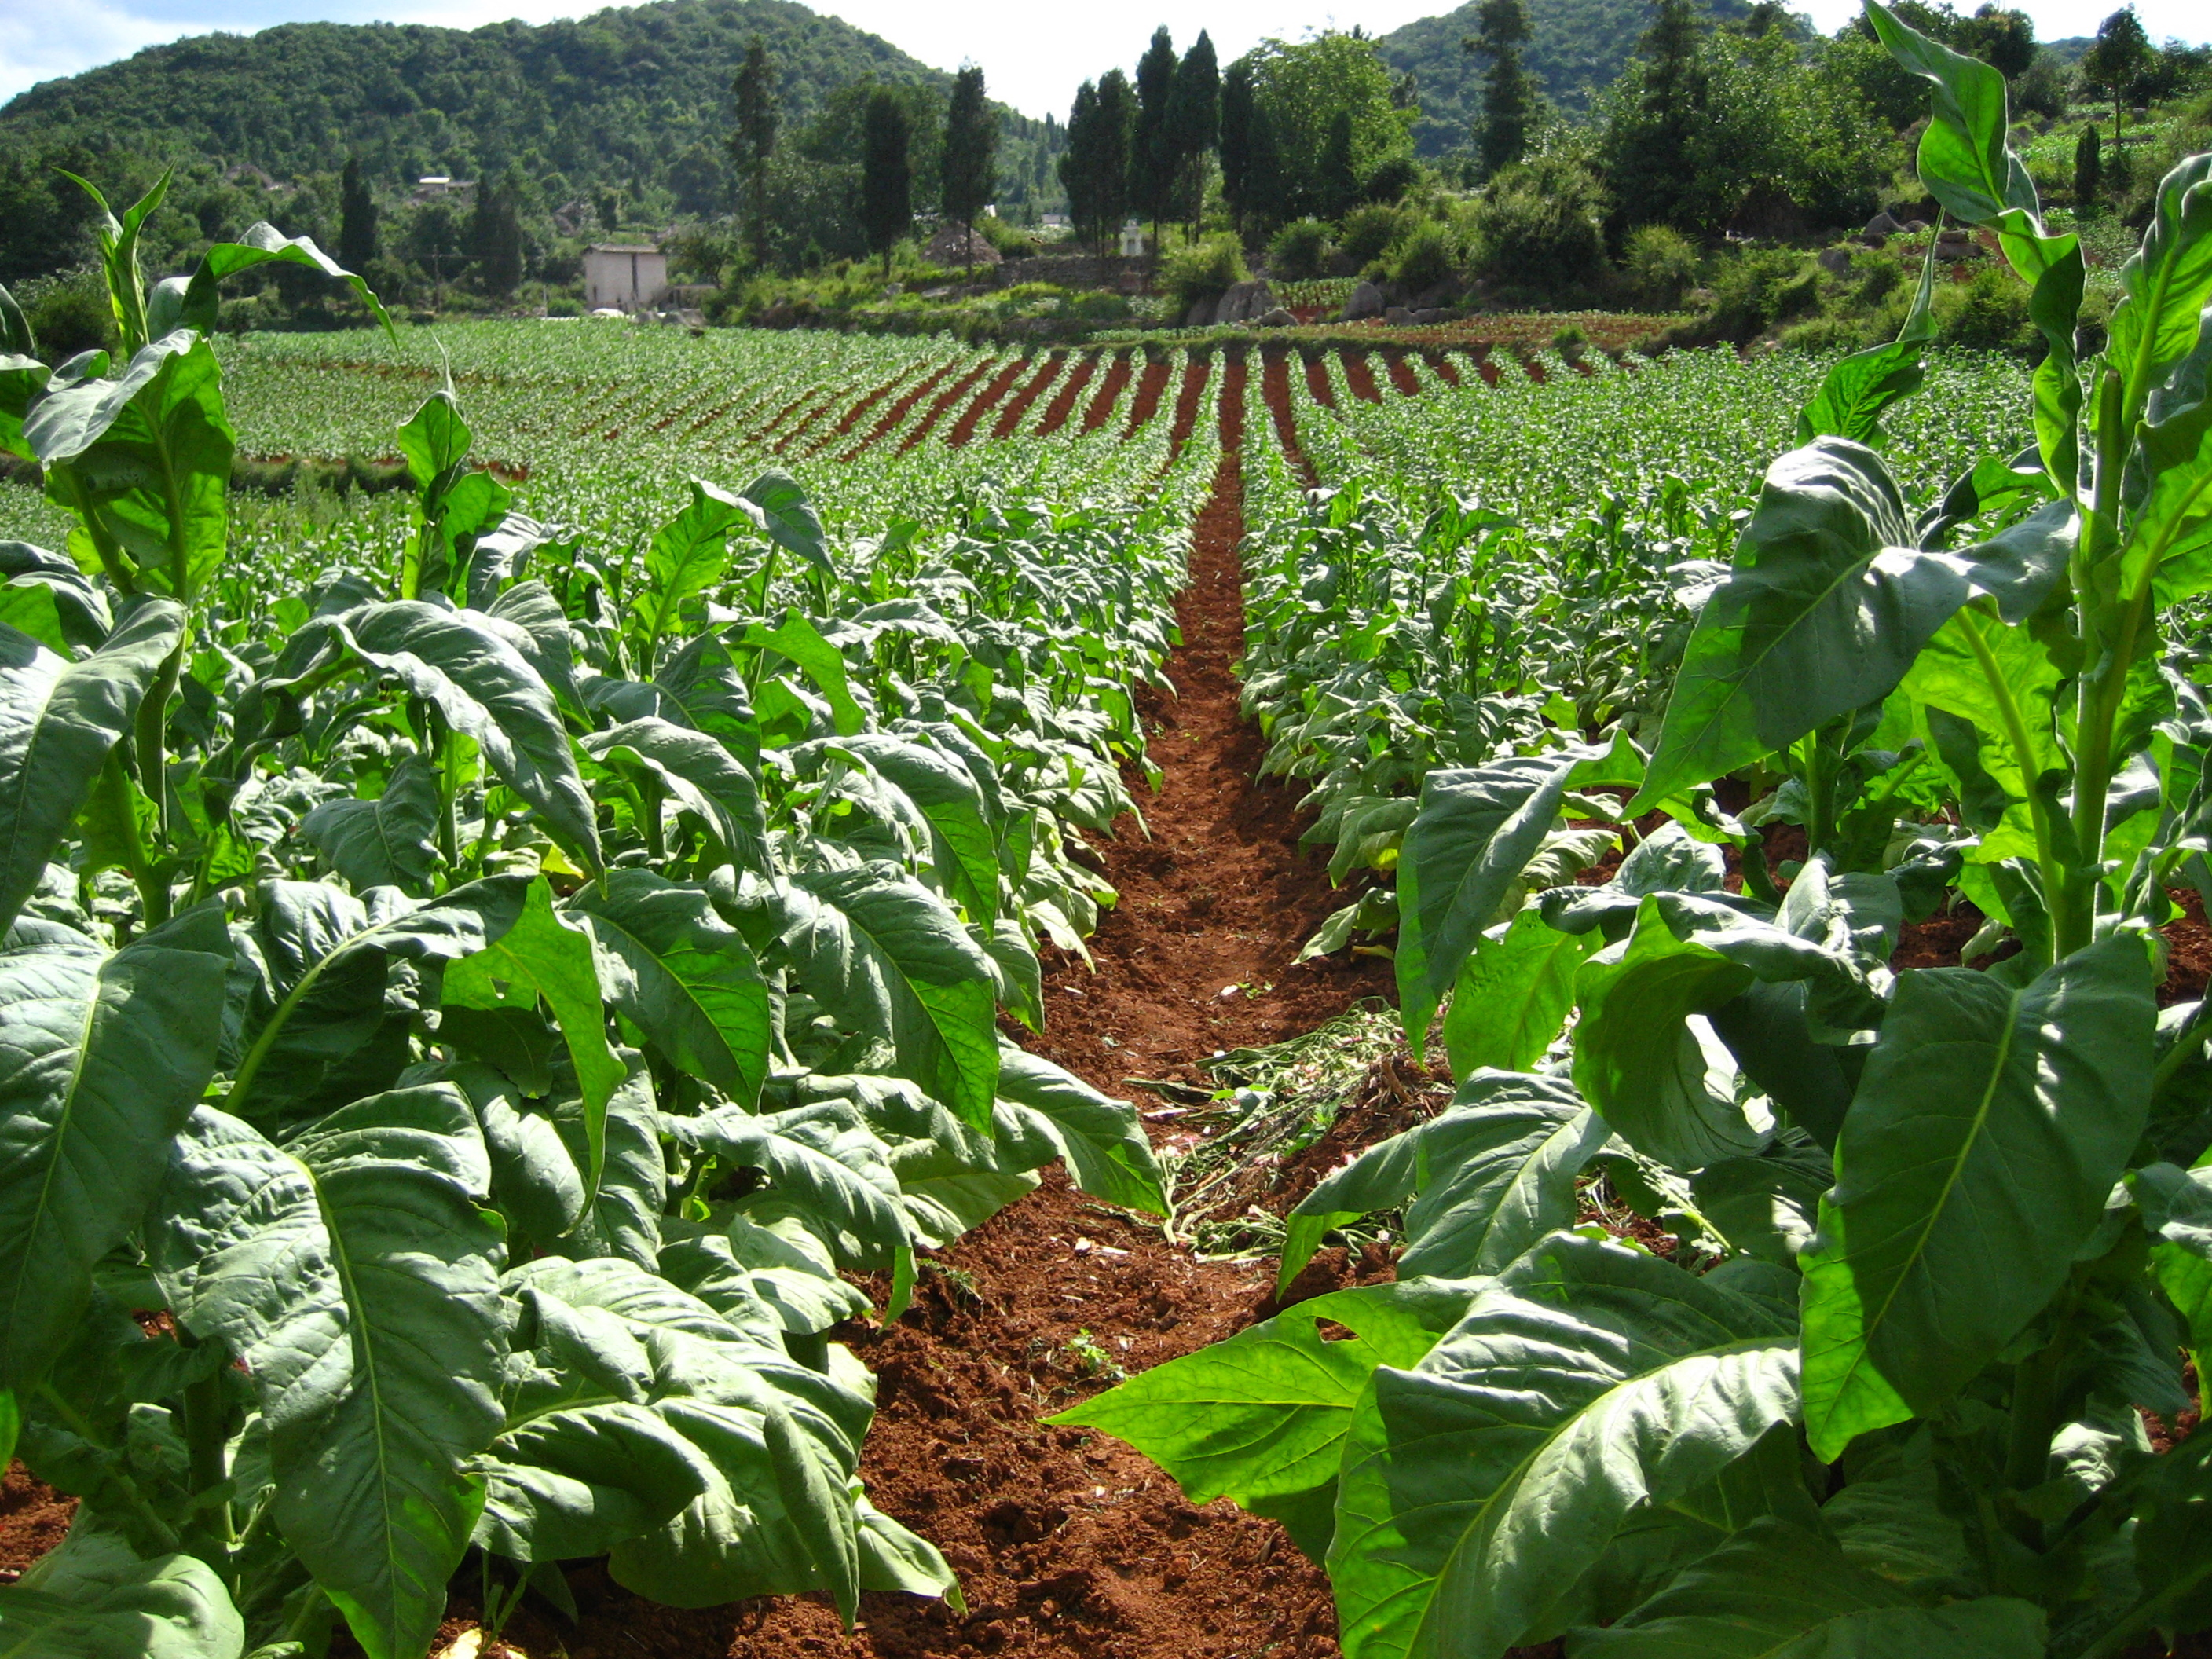 http://mpoverello.files.wordpress.com/2012/08/tobacco-farm.jpg